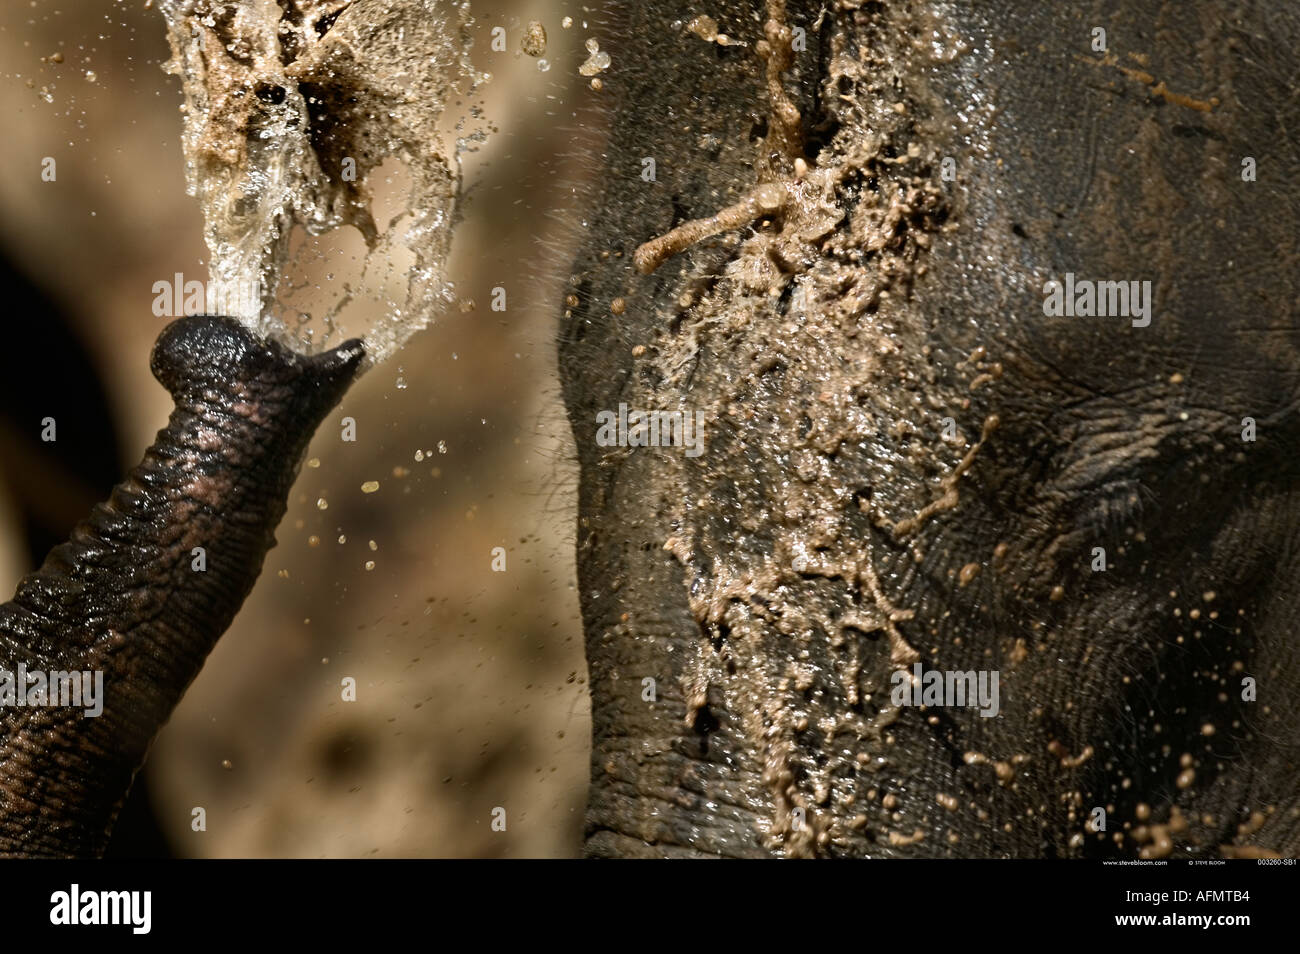 Indian elephant squirting himself with water Bandhavgarh India - Stock Image